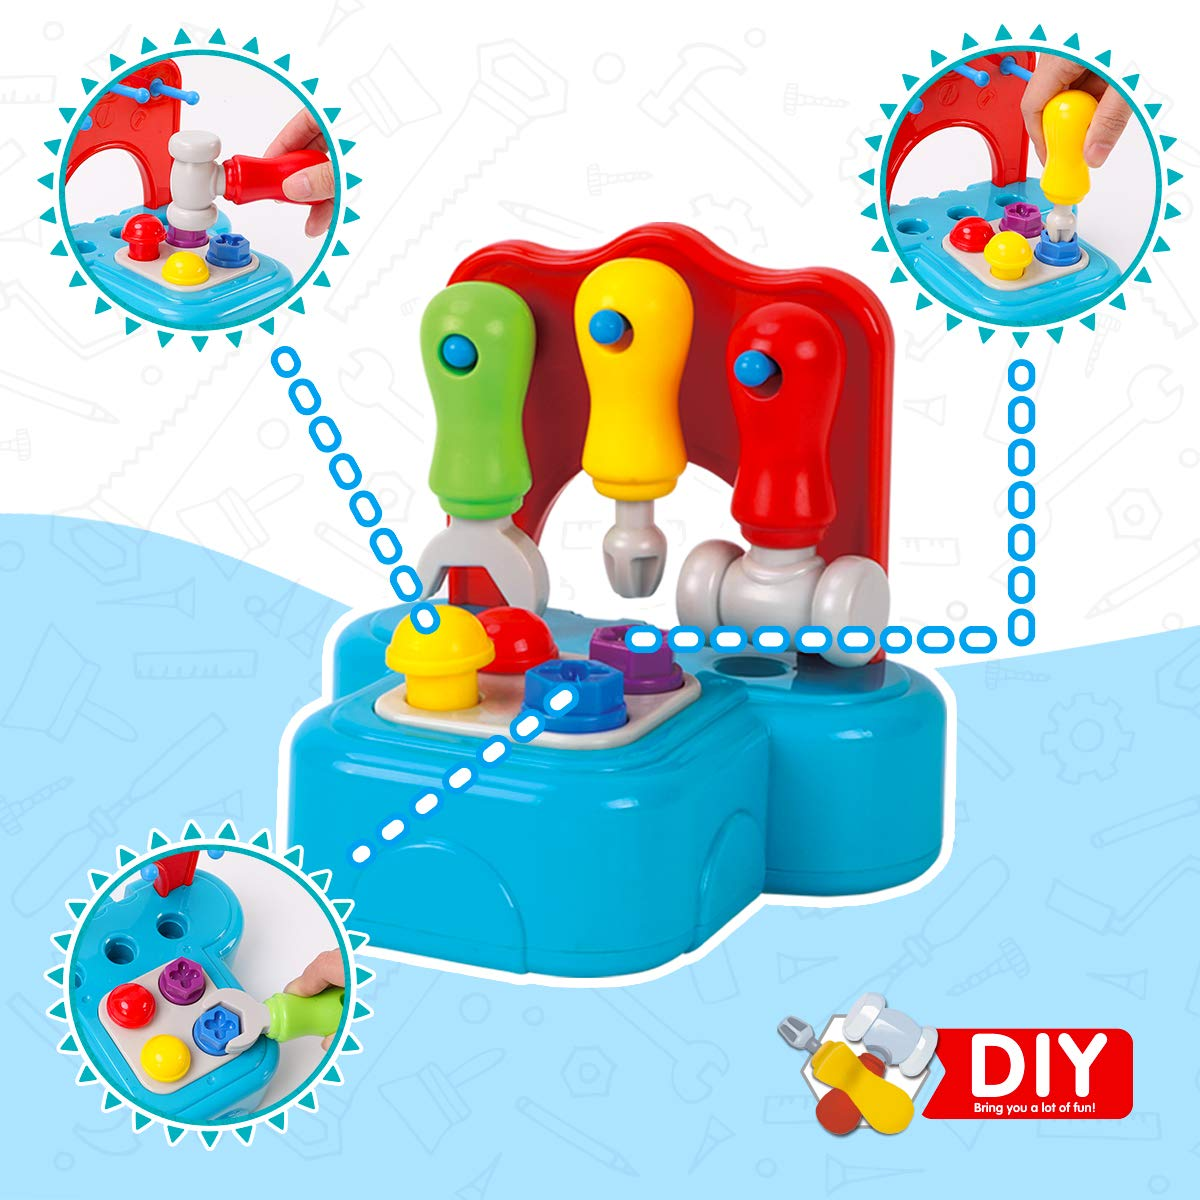 GILOBABY Kids Learning Tool Set with Lights and Sounds Pretend Playset Construction Tool STEM Building Toys for Toddler Boys and Girls Age 2+